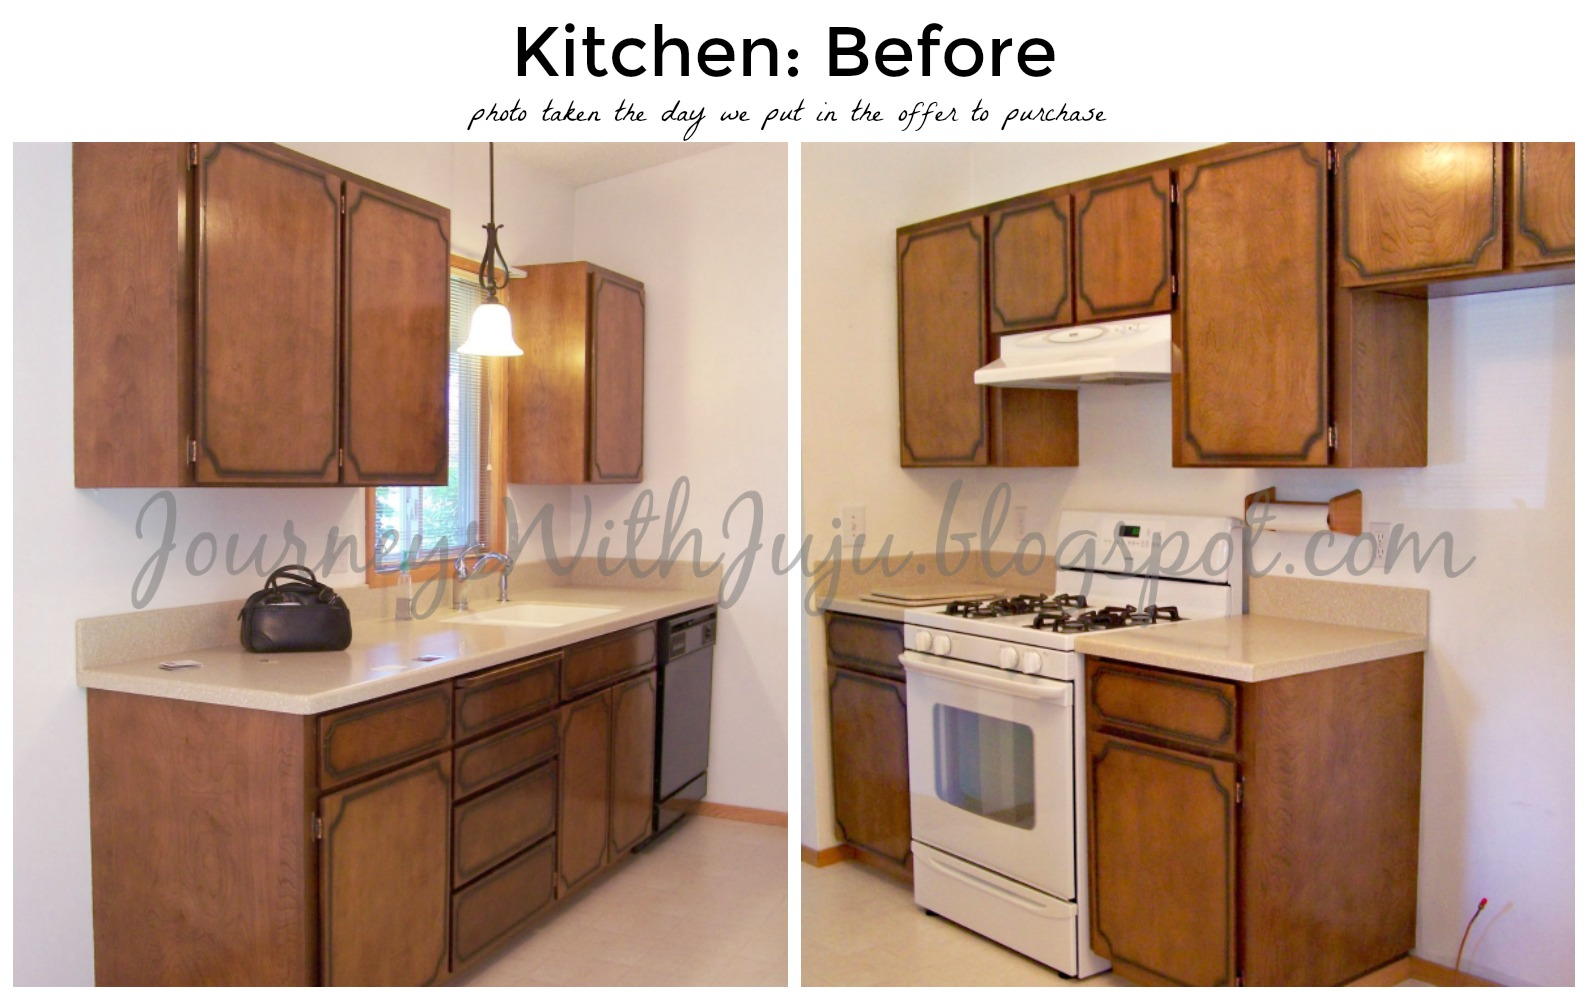 Journeys with Juju: Kitchen Cabinet Makeover - Doors & Drawers ...